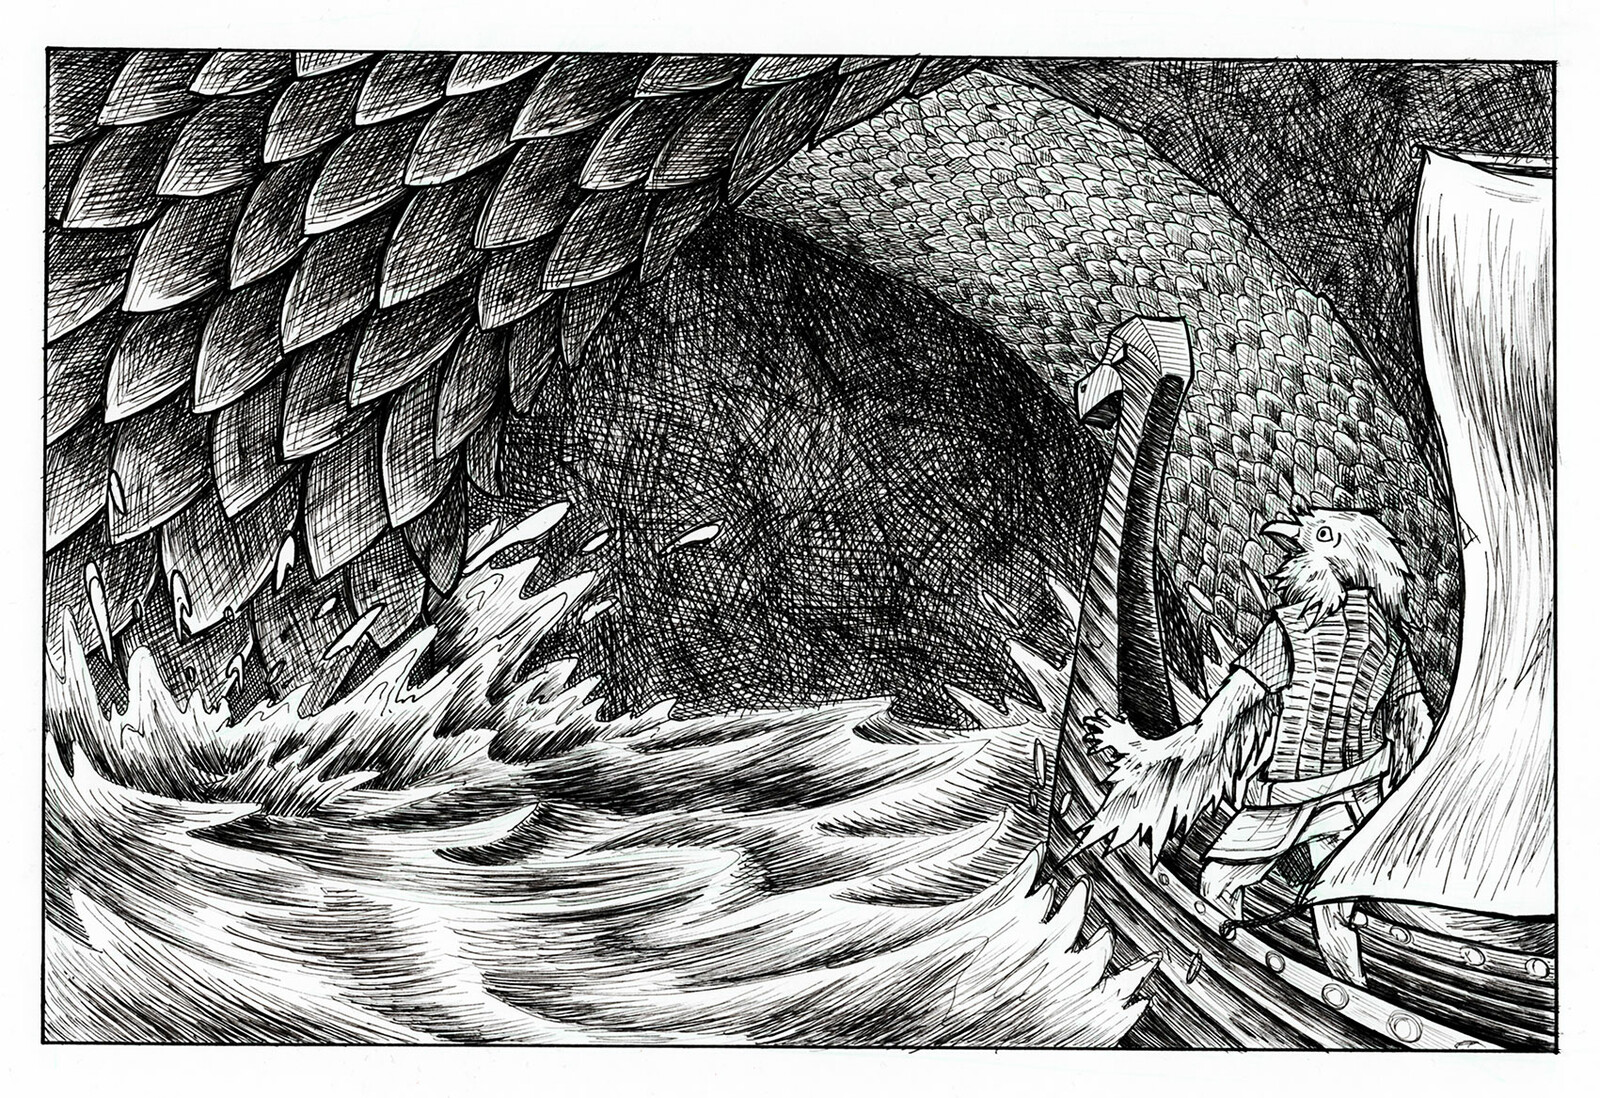 Spin off illustration #1  Hauk is sailing a small ship through the fjords when a serpent erupts out of the water.